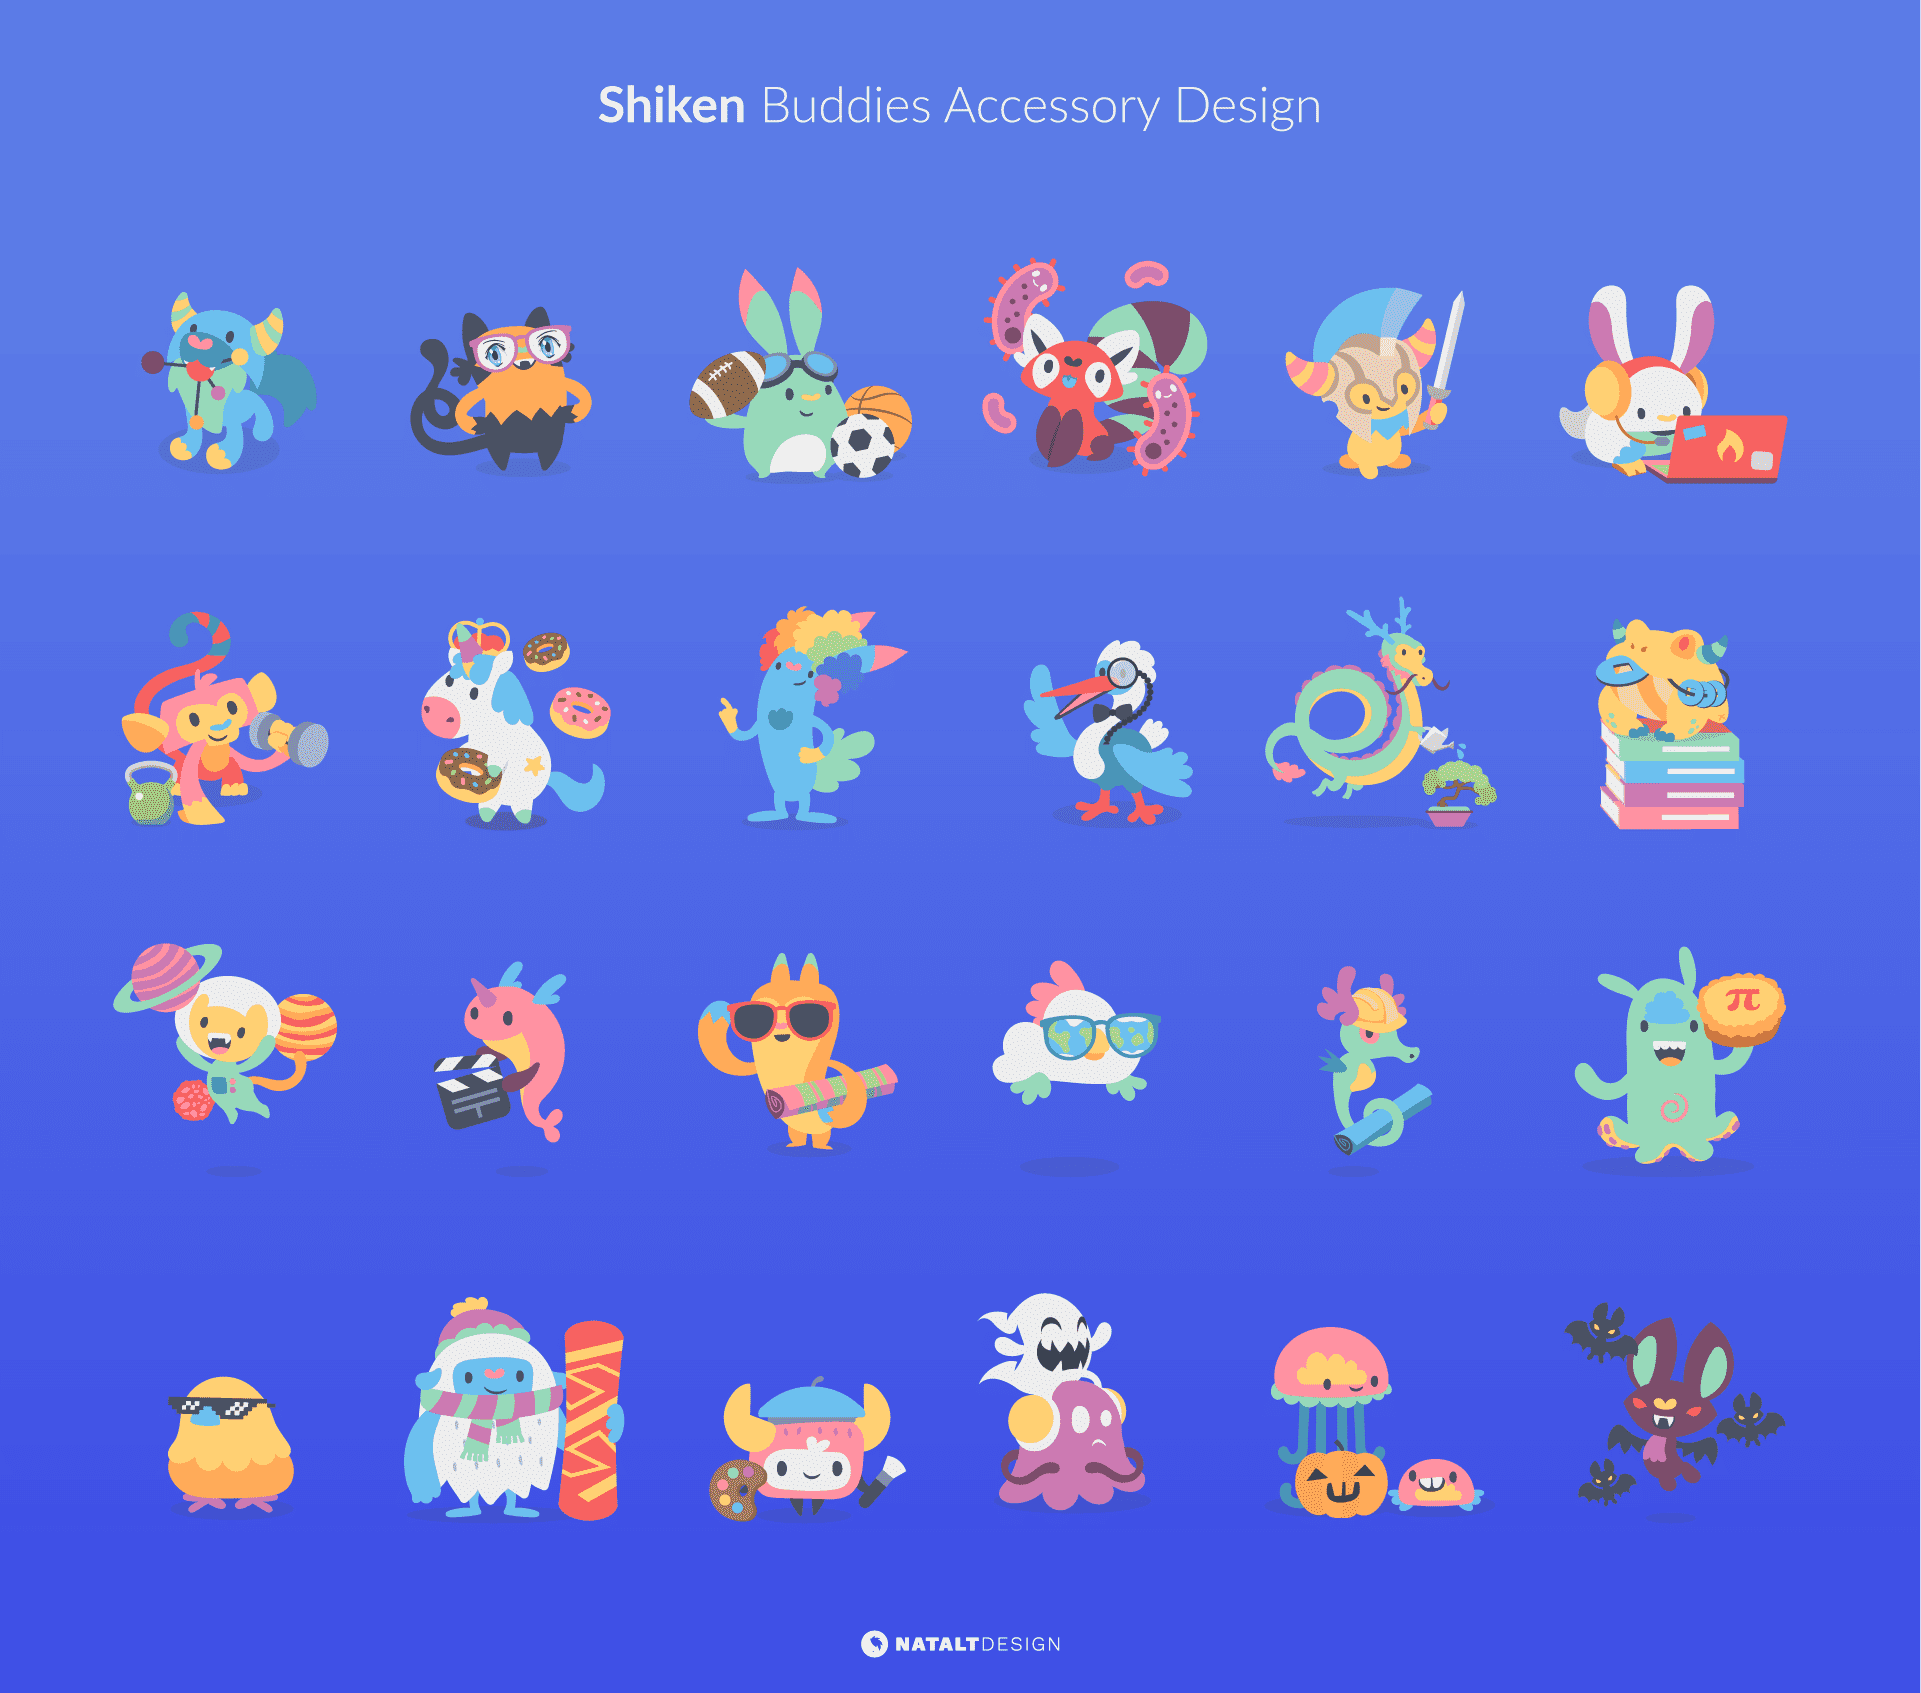 Shiken accessories design